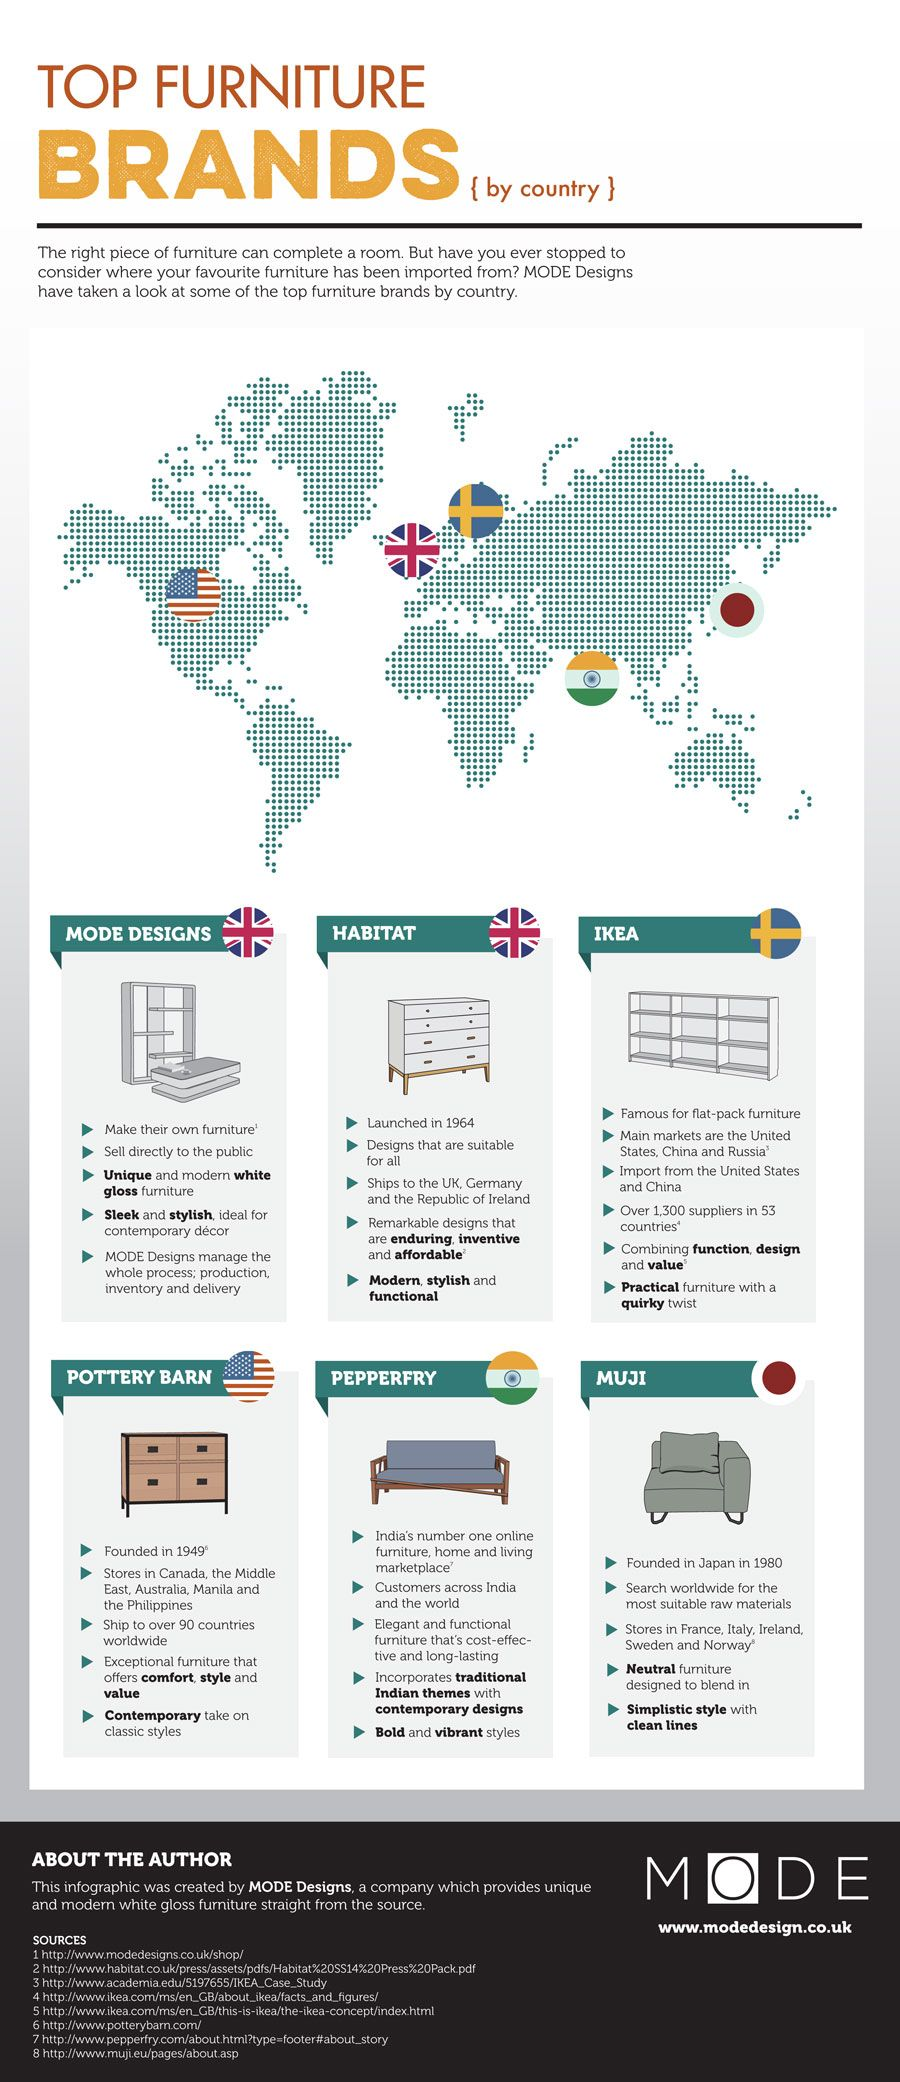 Top Furniture Brands By Country